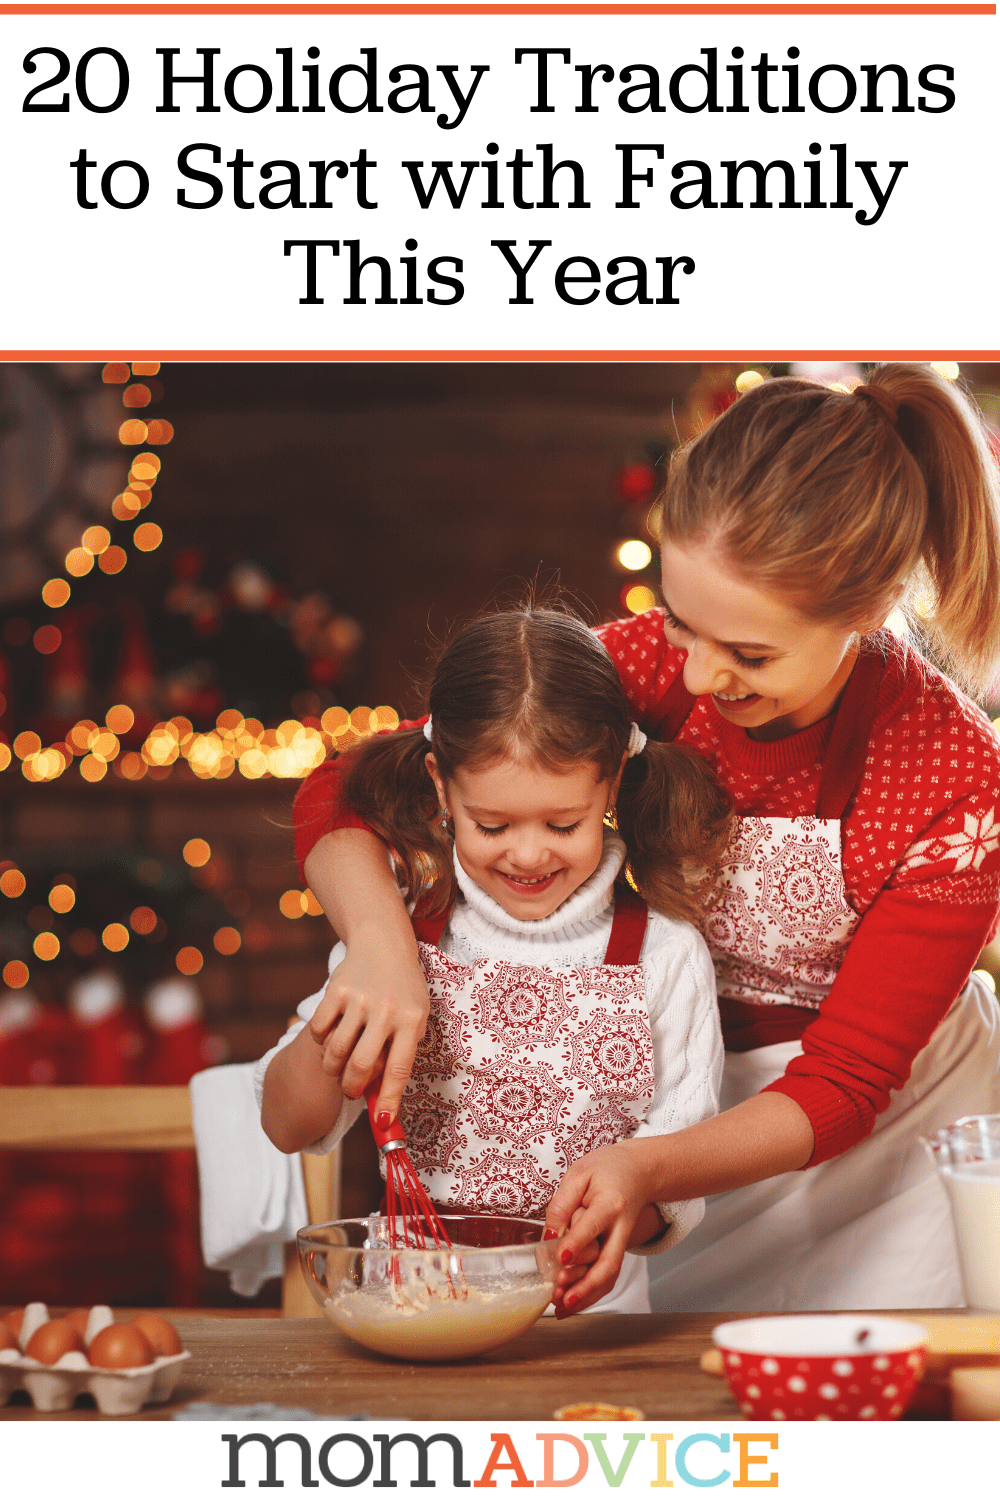 20 Holiday Traditions to Start with Your Family This Year